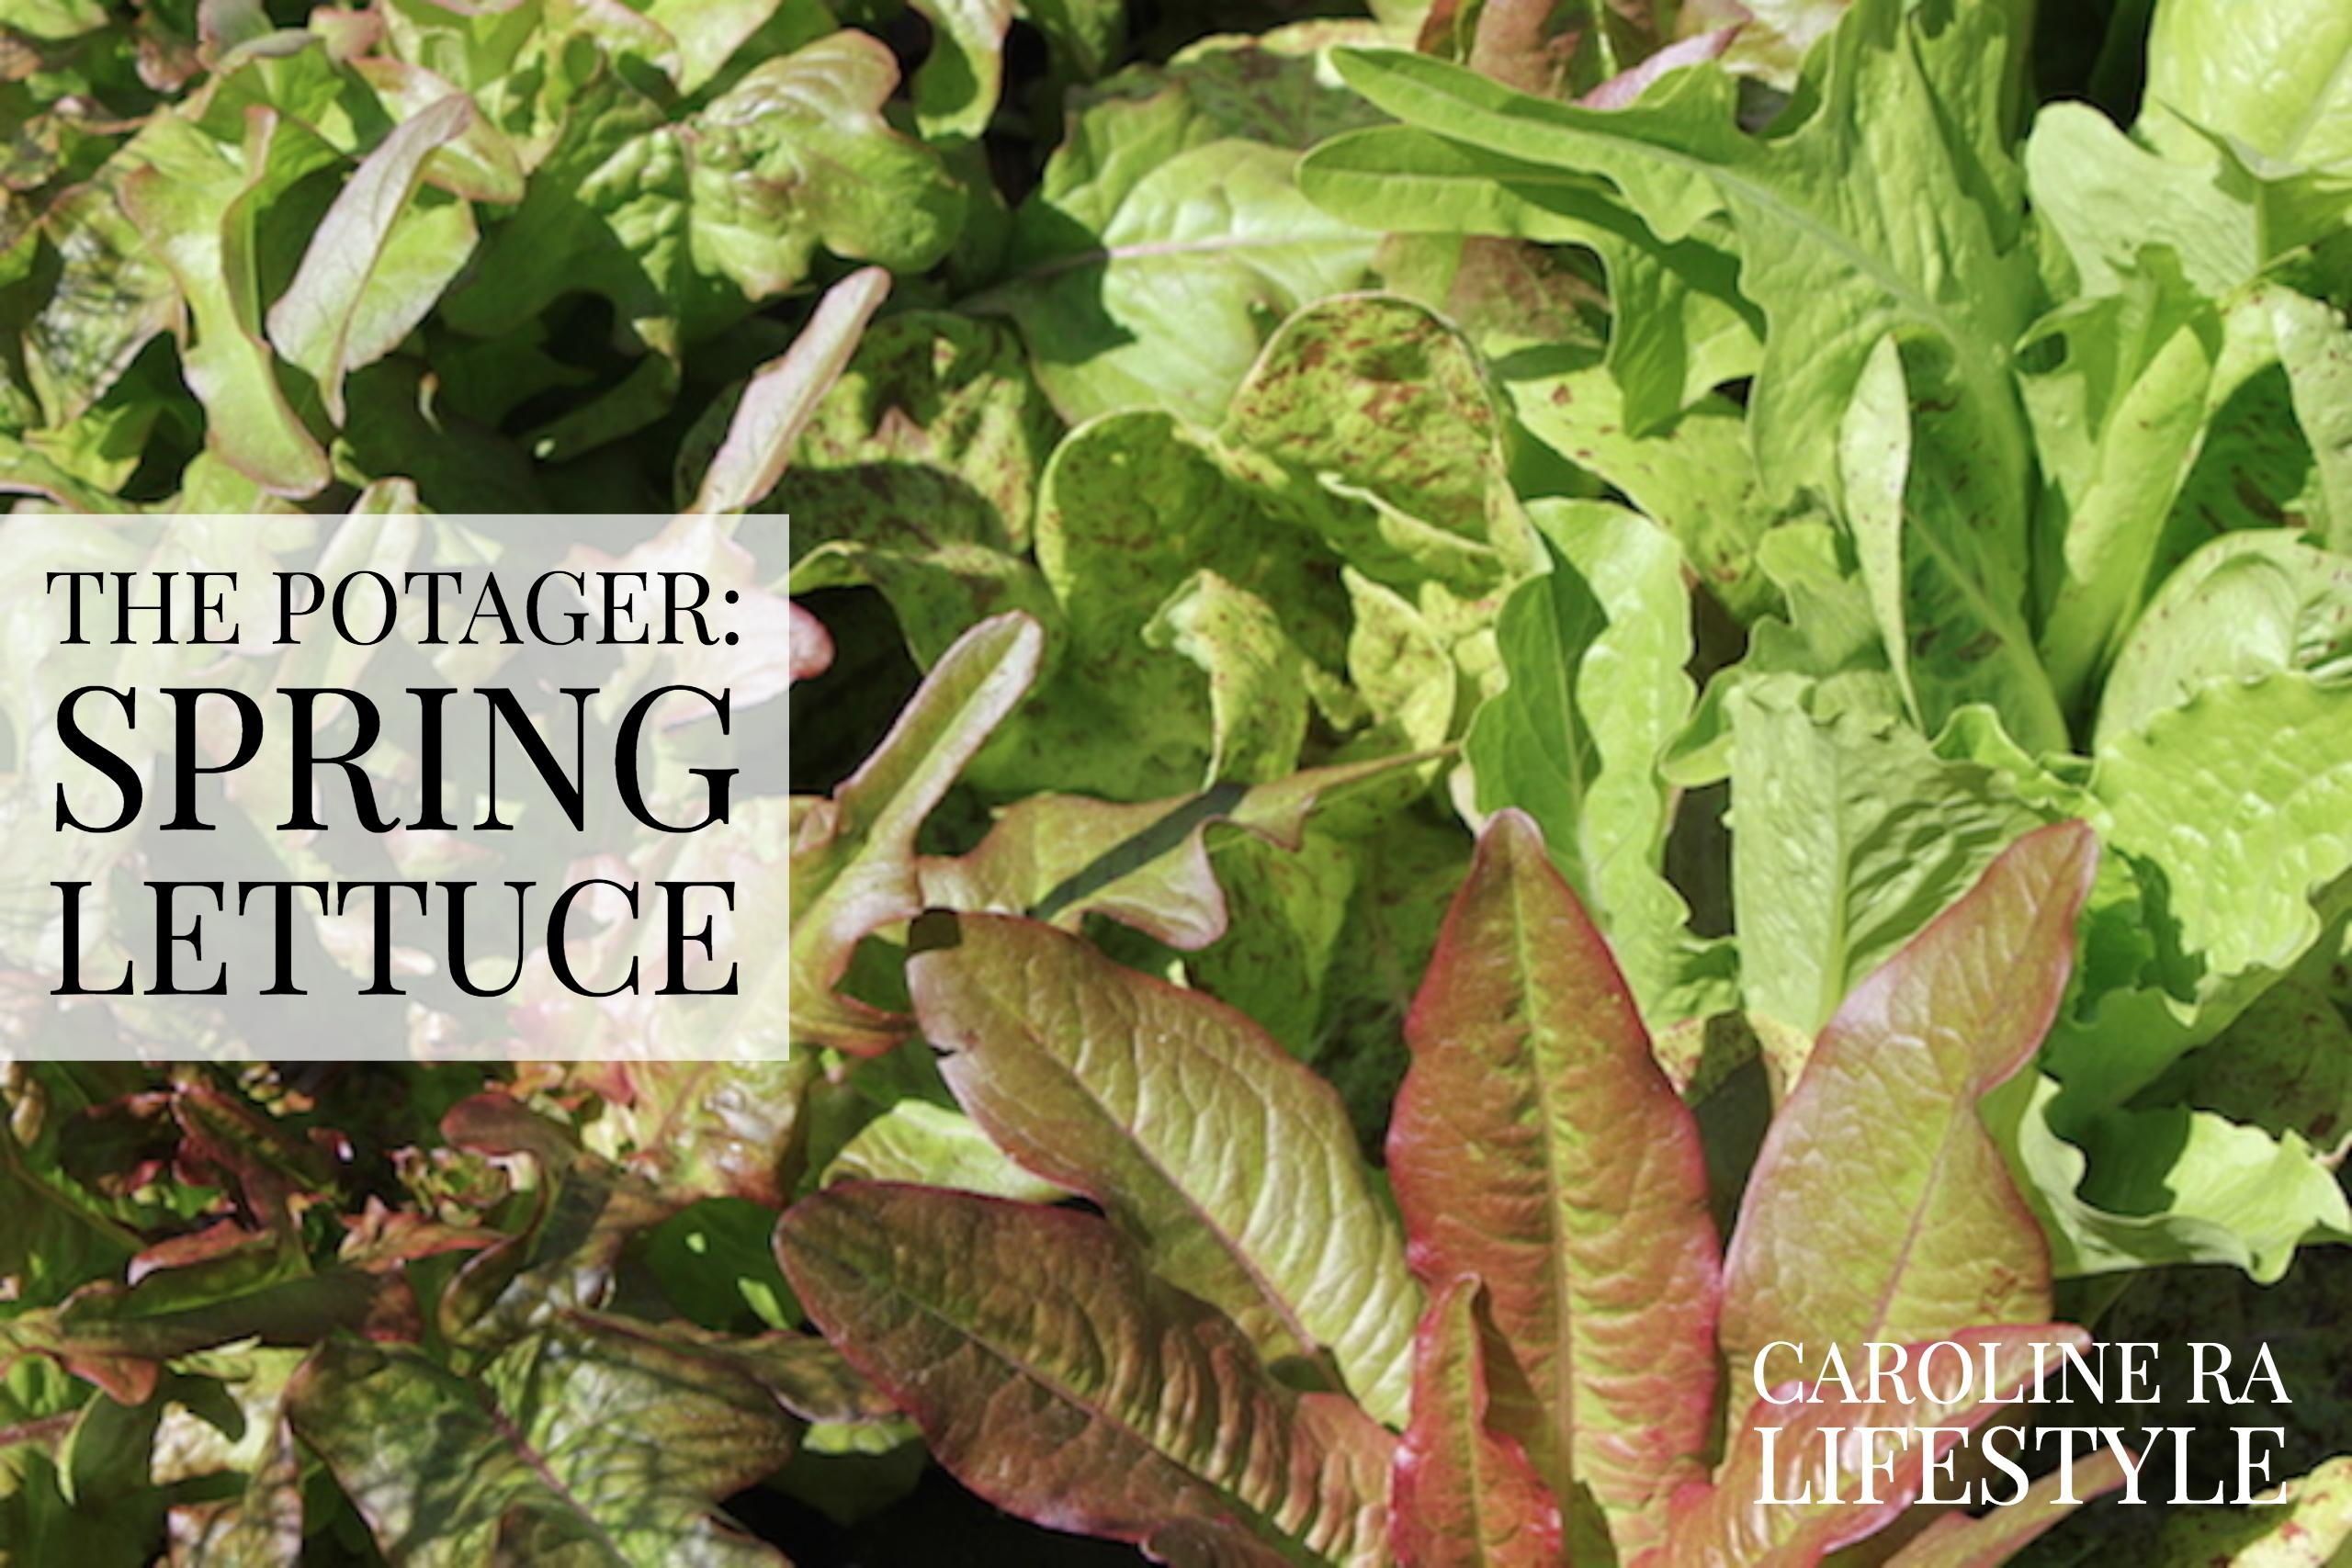 The Potager: Spring Lettuce